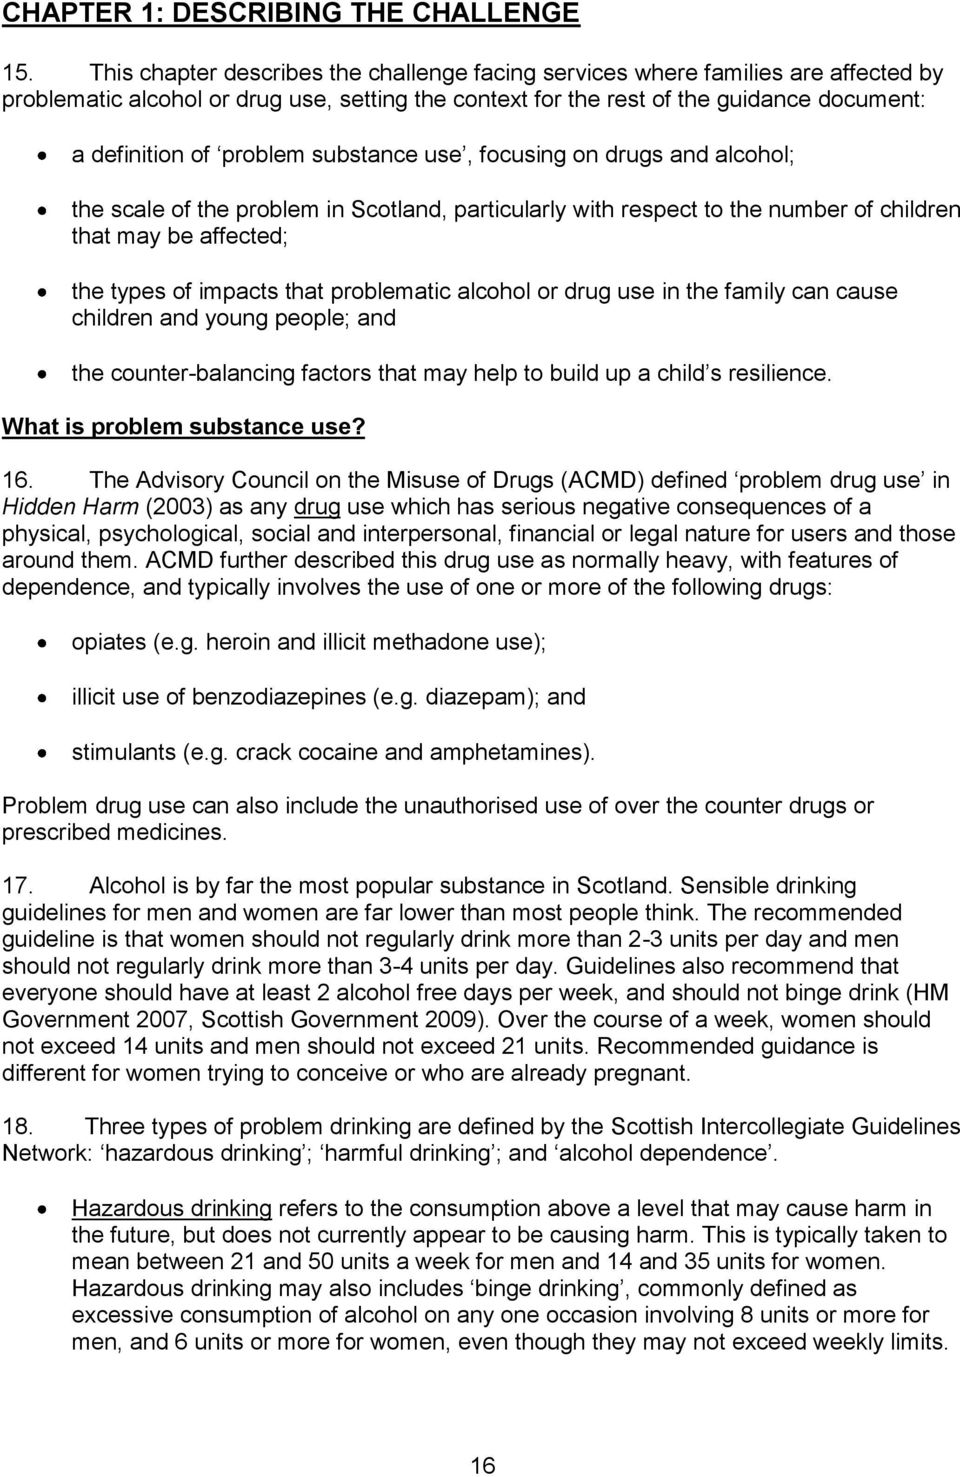 substance use, focusing on drugs and alcohol; the scale of the problem in Scotland, particularly with respect to the number of children that may be affected; the types of impacts that problematic